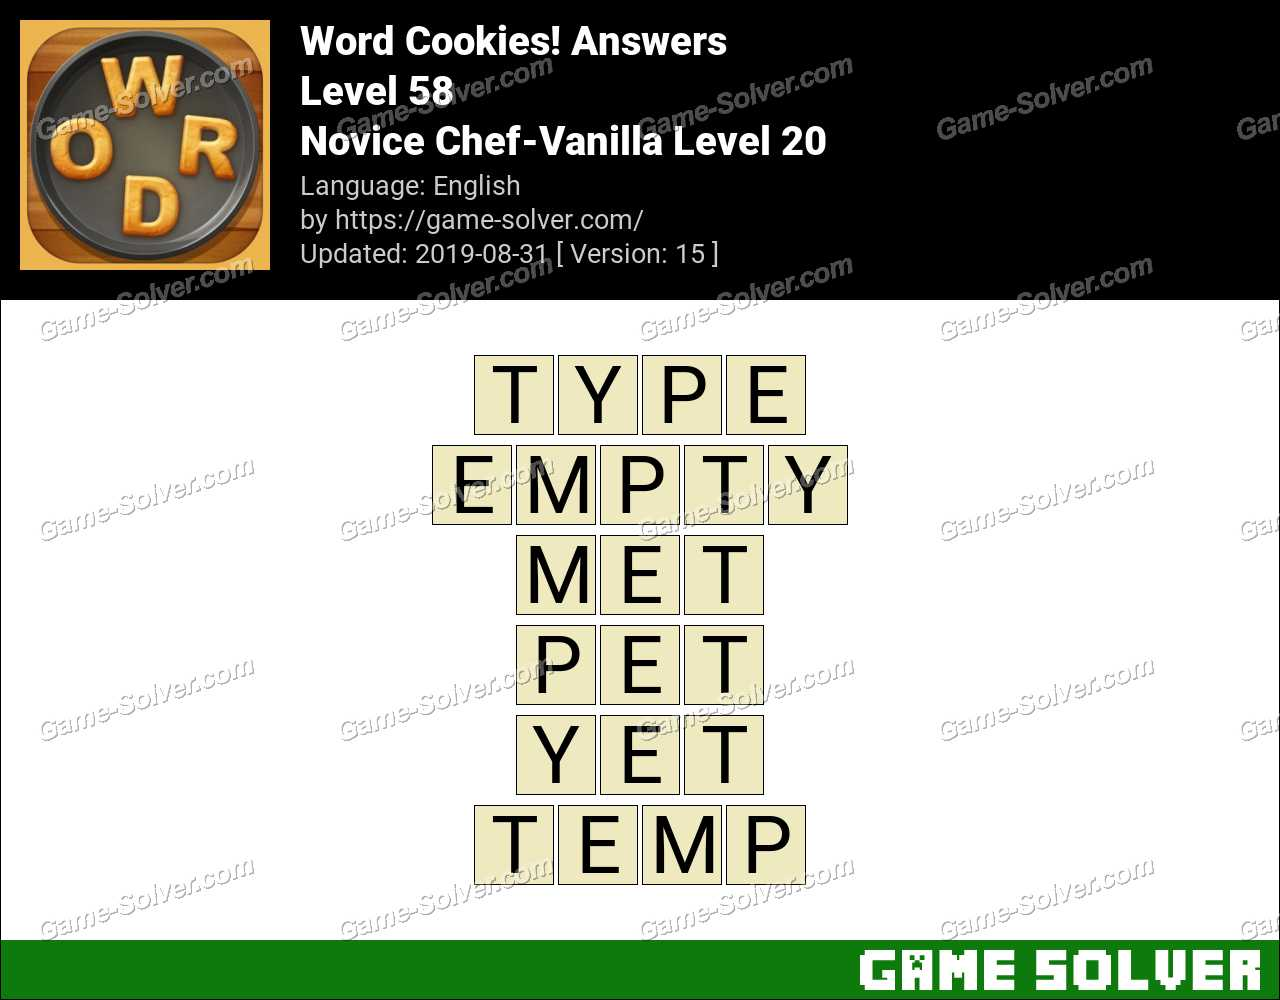 Word Cookies Novice Chef-Vanilla Level 20 Answers